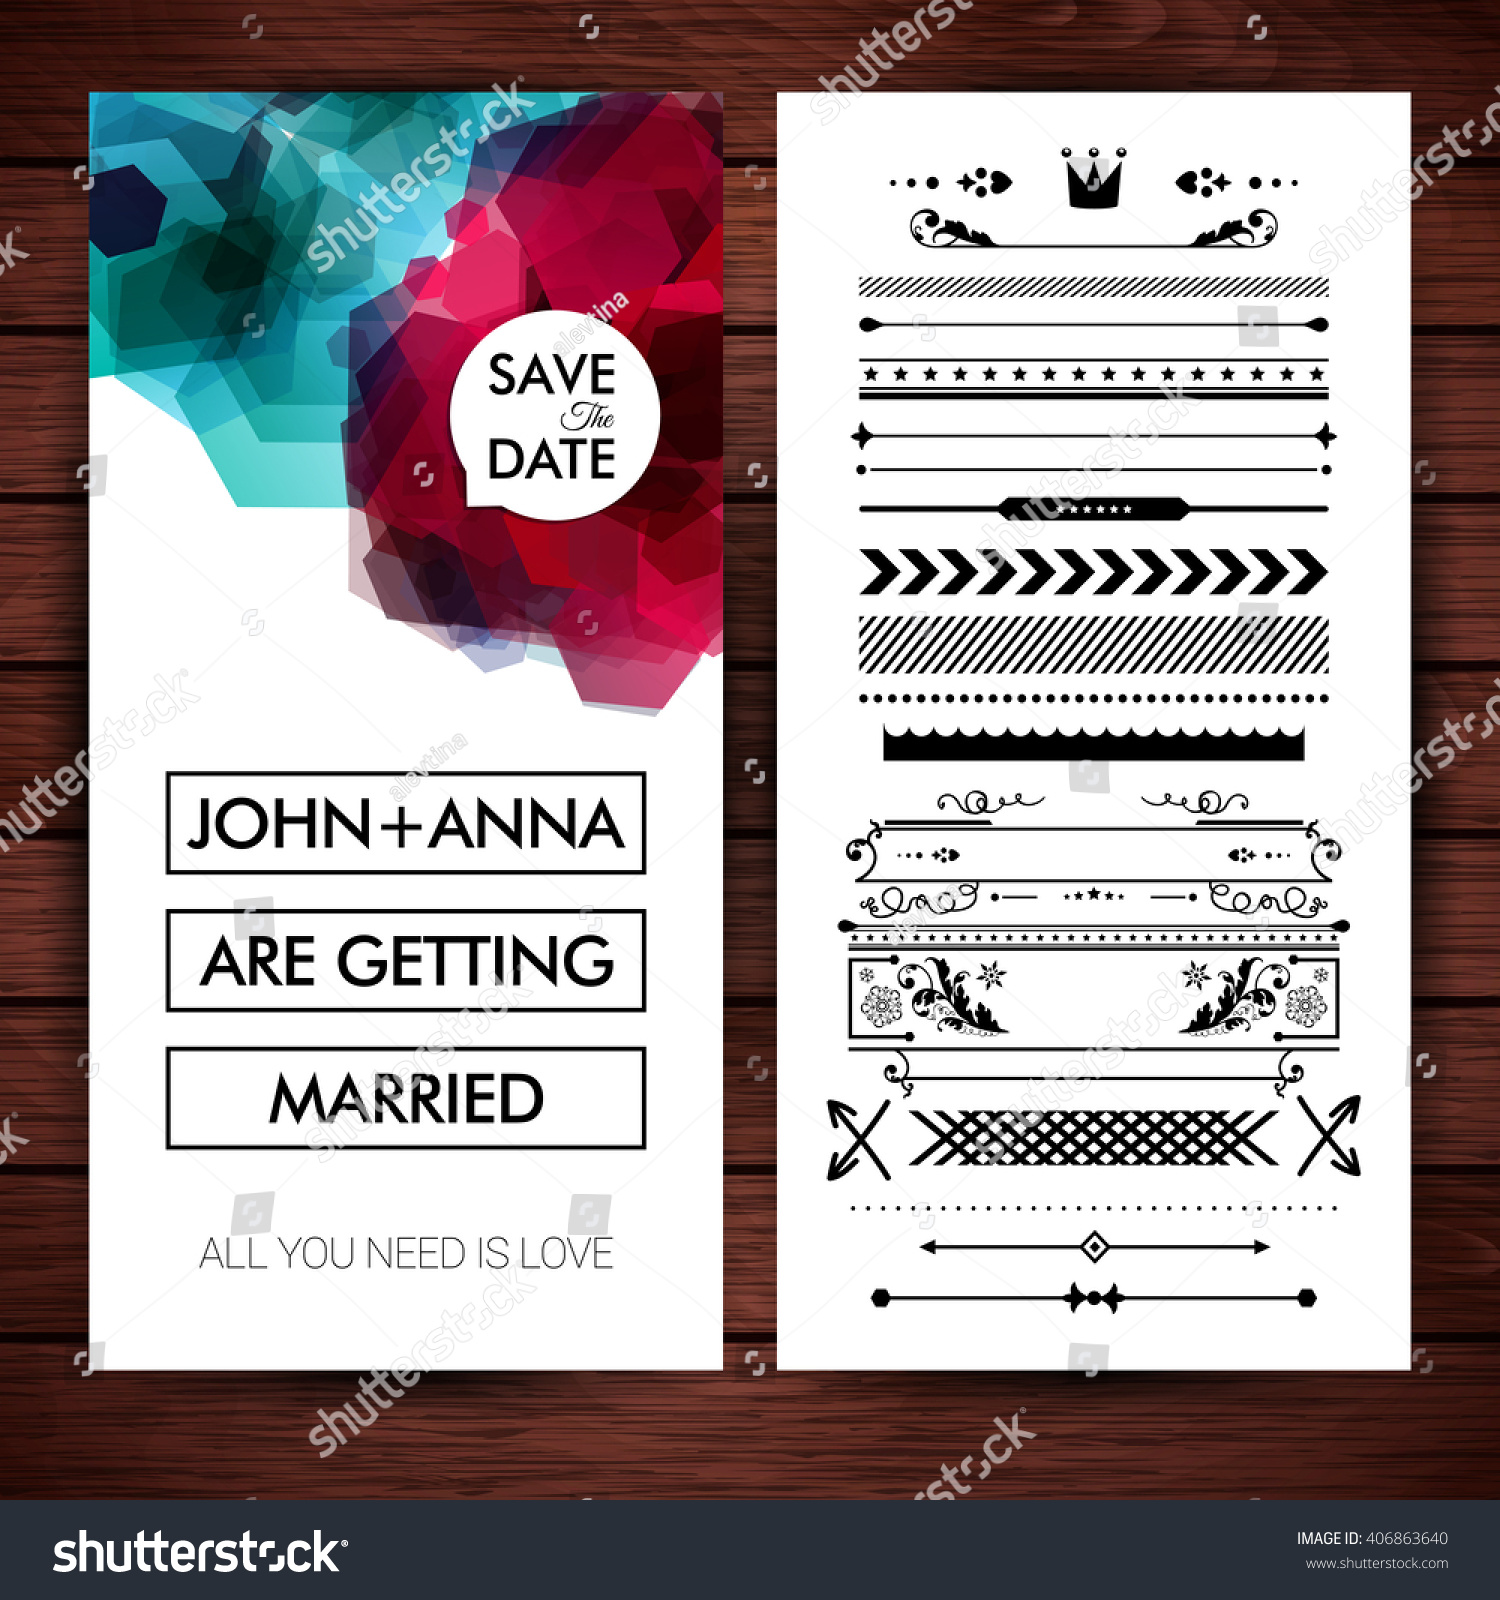 Wedding Invitation Placeholder Name Text Over Stock Vector 406863640 ...